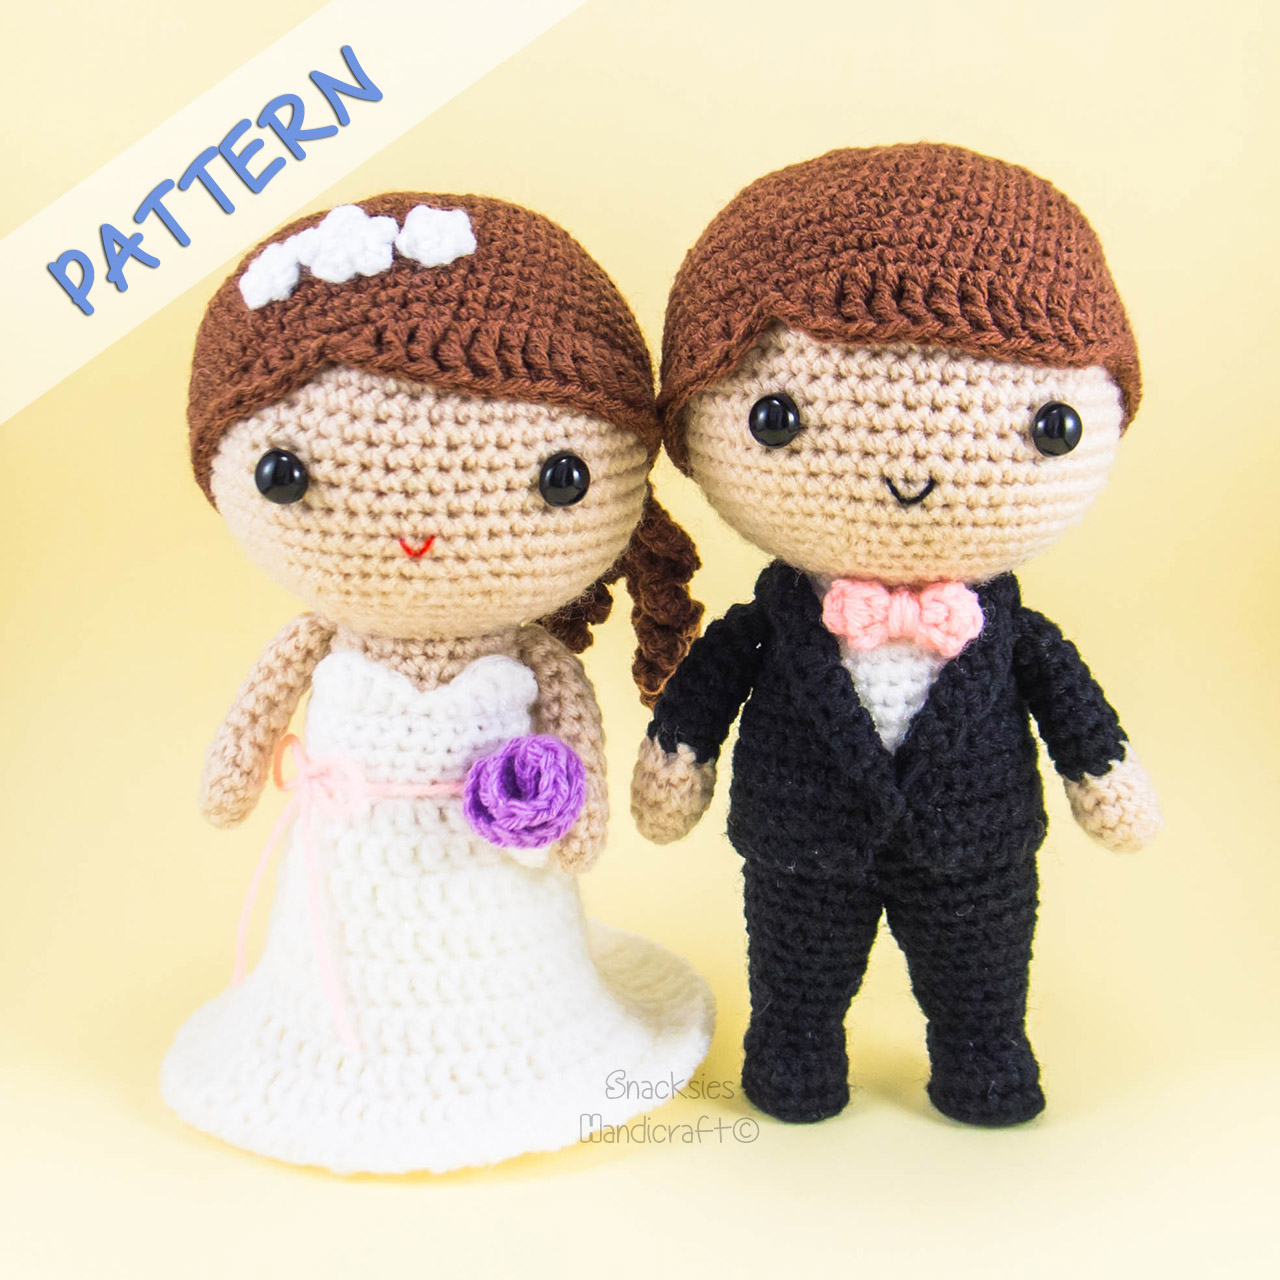 Bride and Groom Amigurumi Pattern ~ Snacksies Handicraft ...